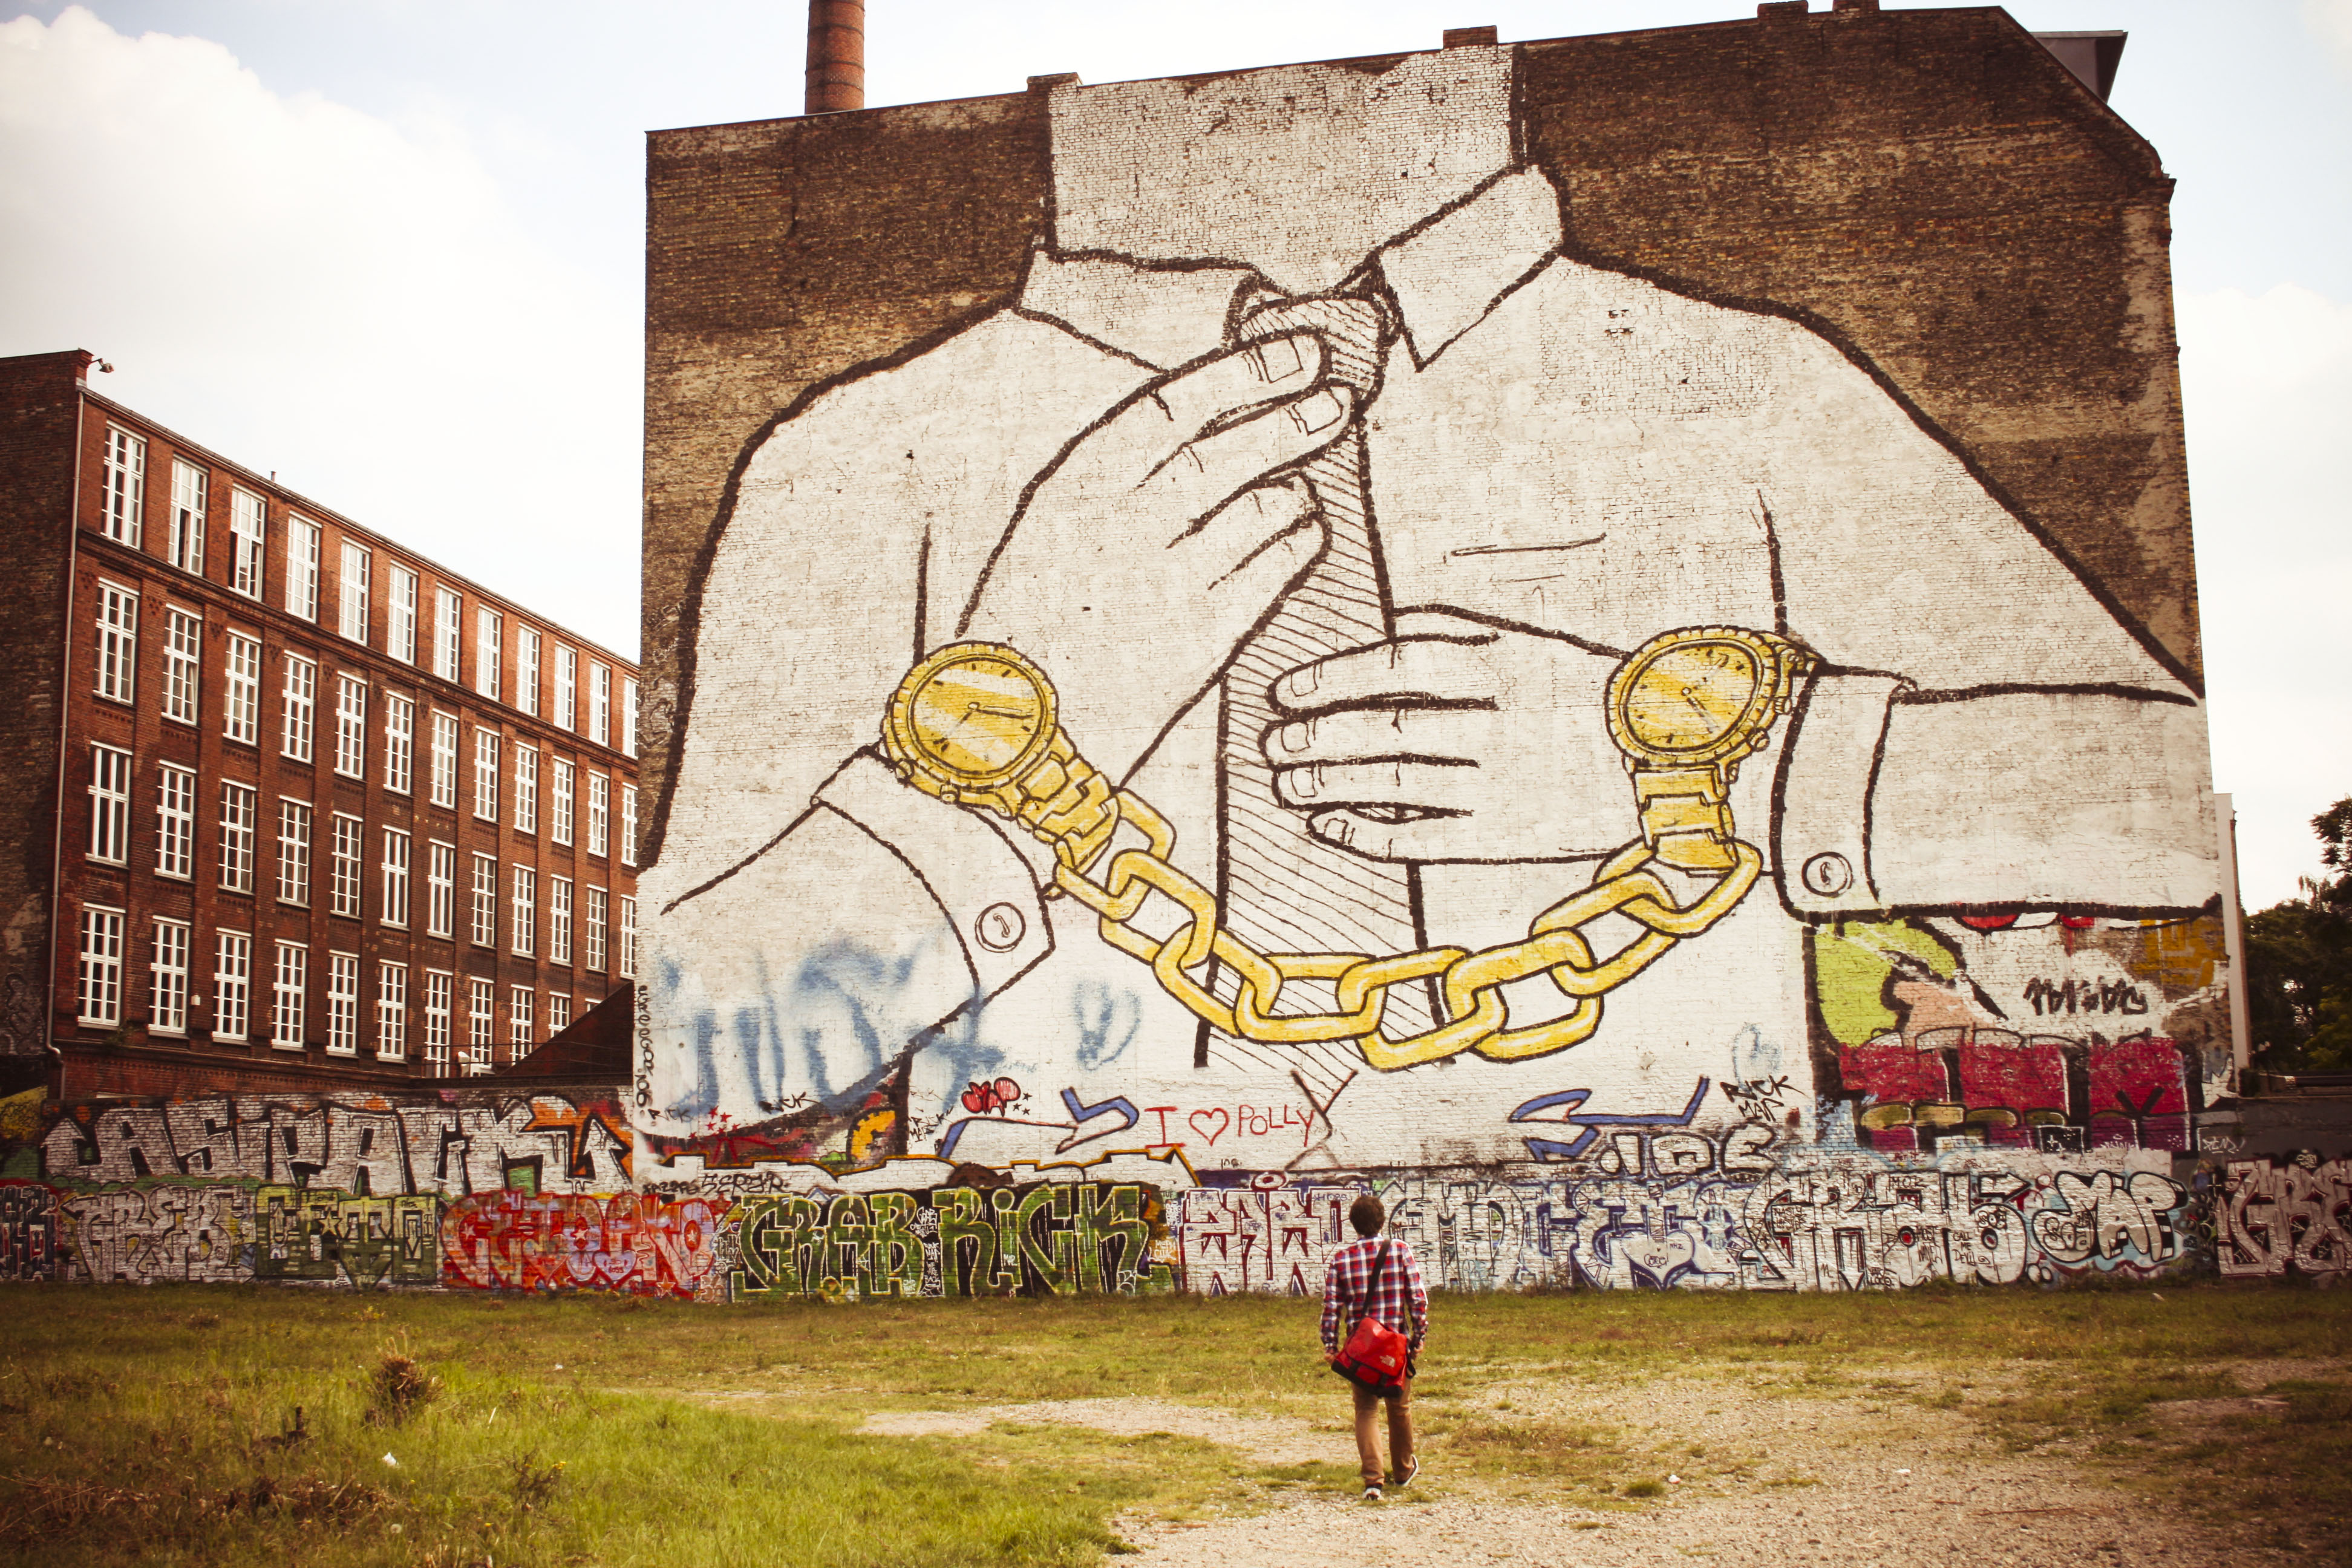 A photo of a mural on the side of a building. The mural depicts a person in a white shirt from the neck down the waist; their hands are in gold handcuffs.